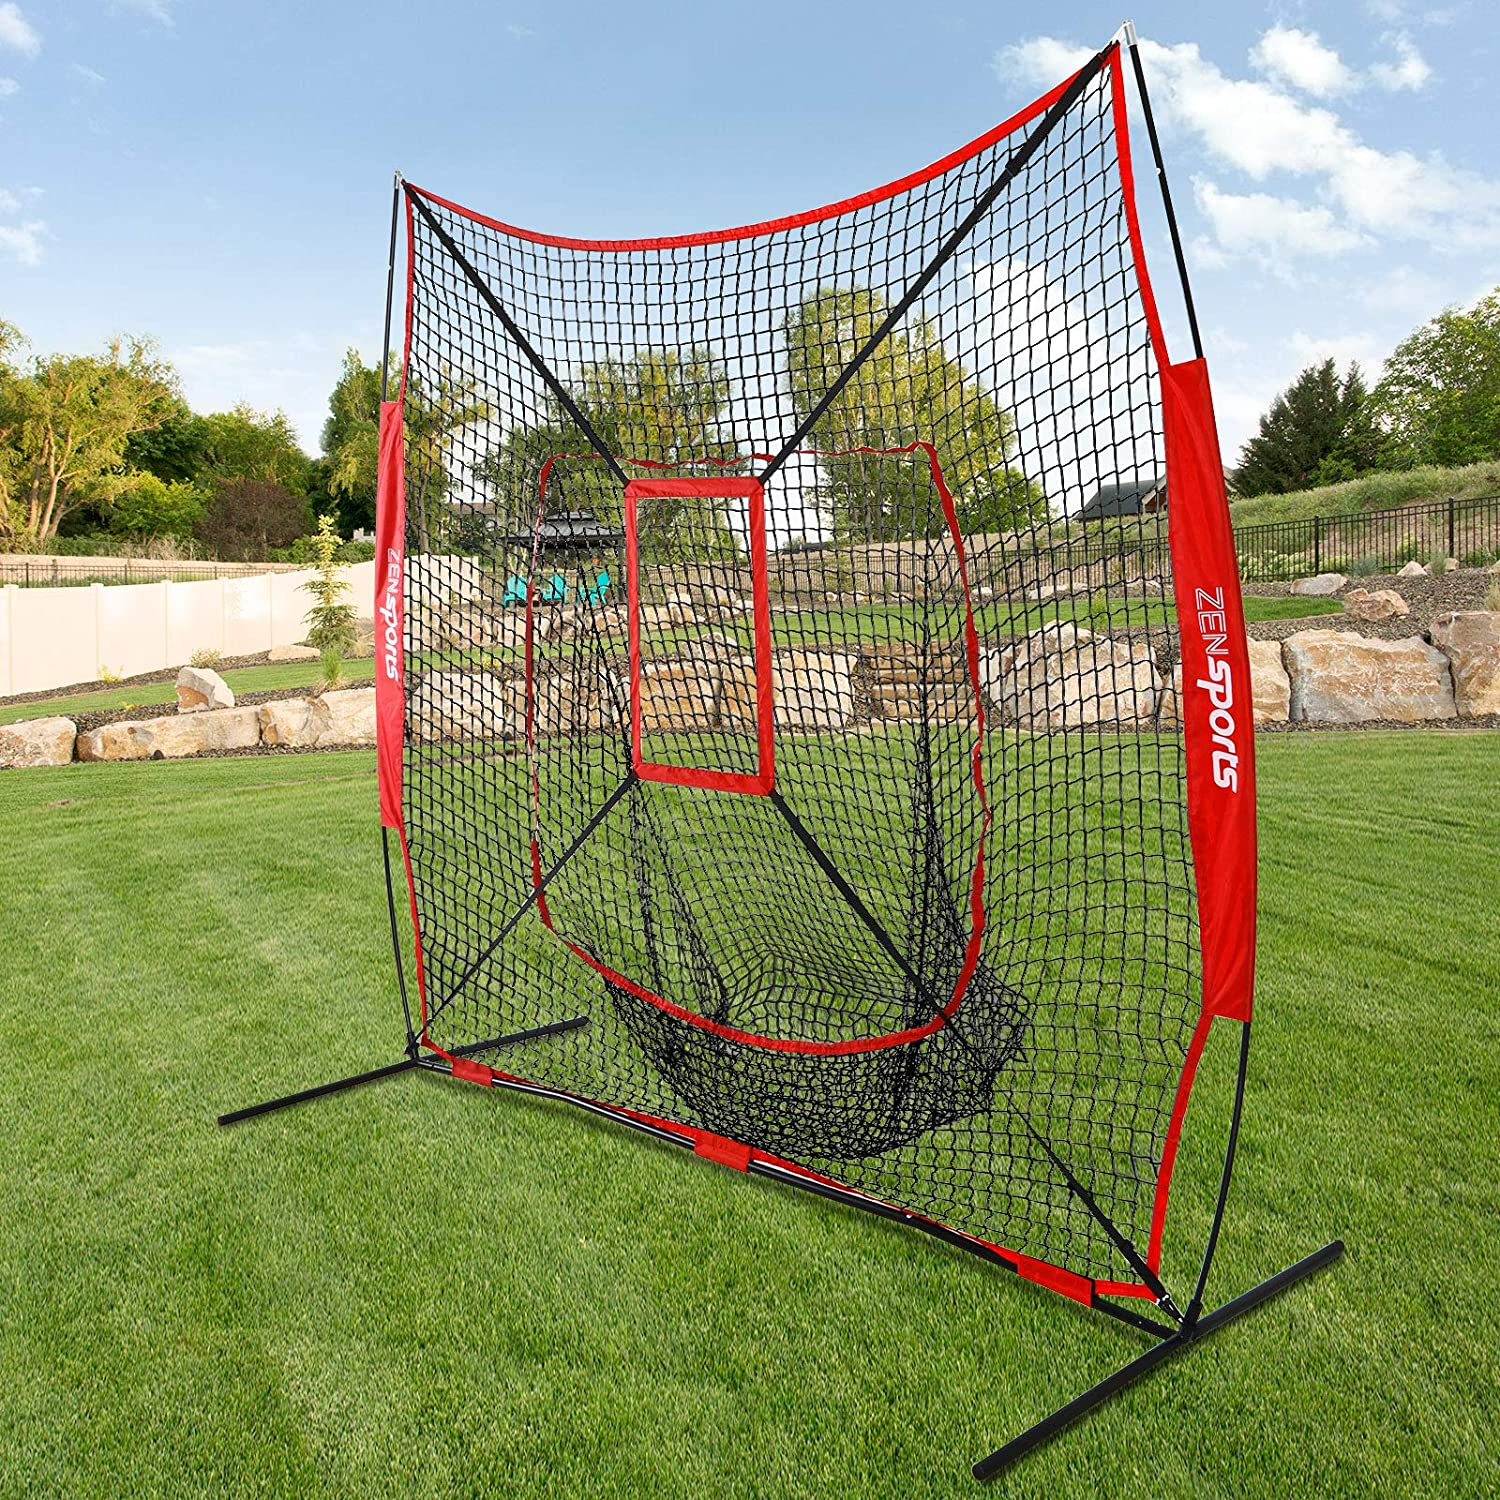 ZENsports 7 x 7 Baseball Softball Practice Hitting Pitching Net with Strike Zone Target and Bow Net Frame Carry Bag,Batting Pitching Softball Tee